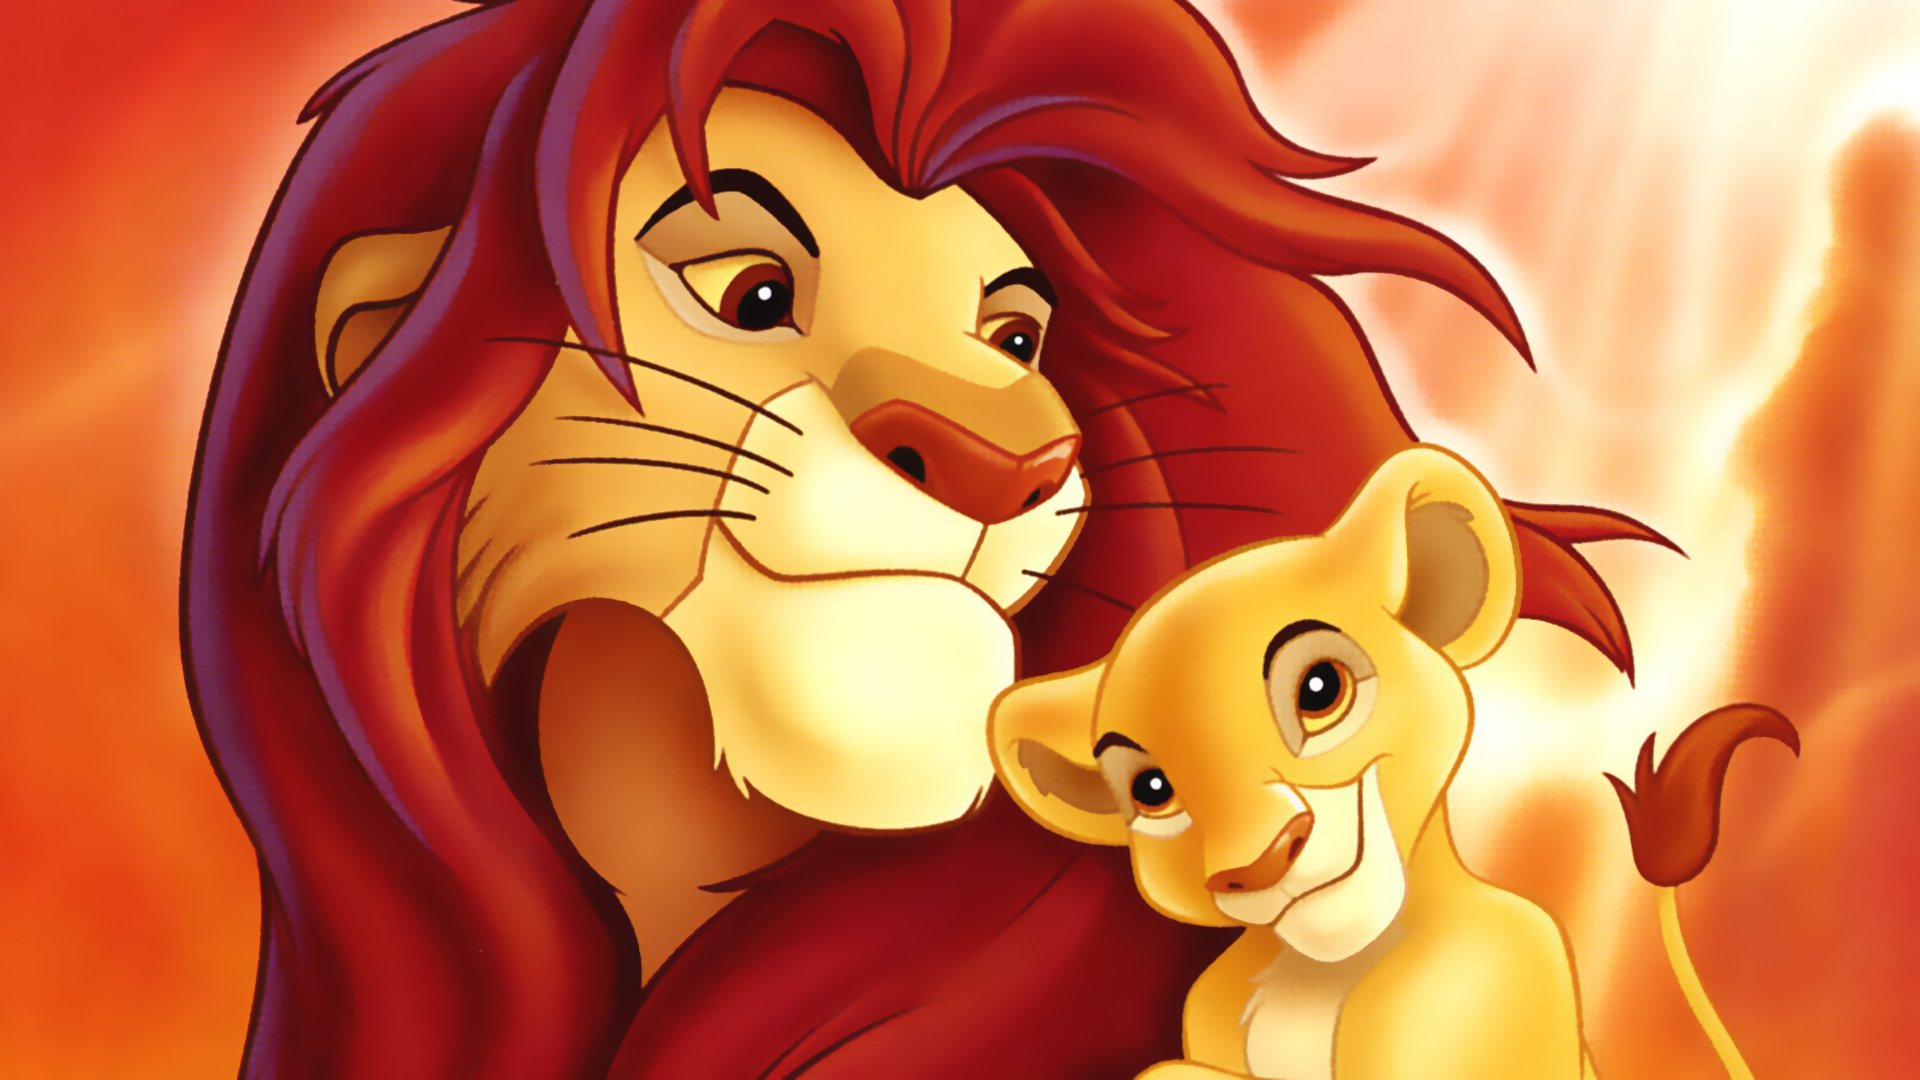 2 The Lion King 2 Simba S Pride Hd Wallpapers Background Images Wallpaper Abyss